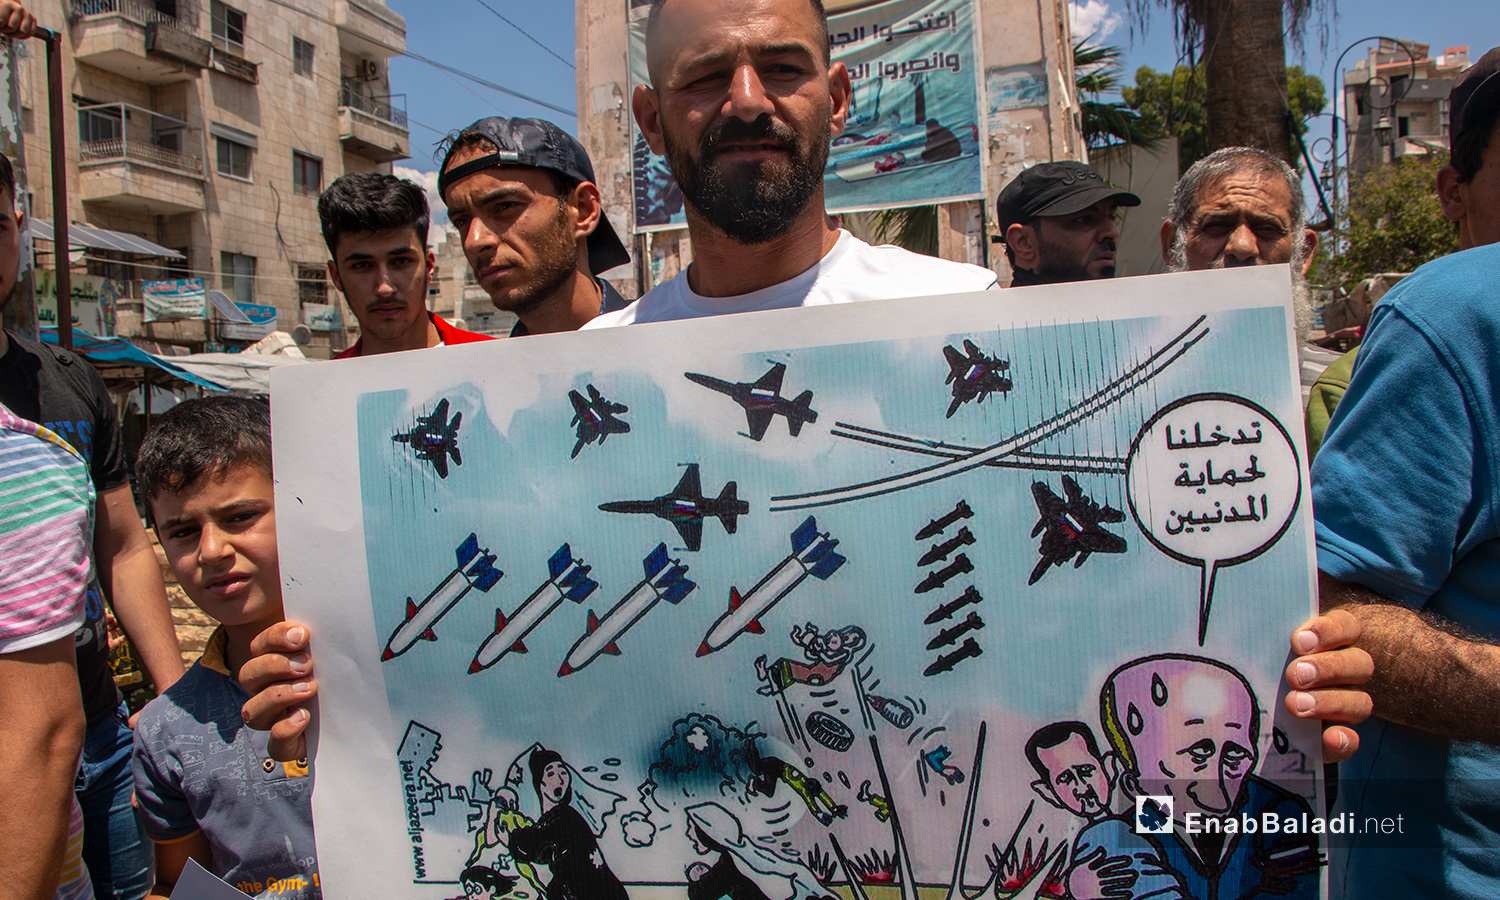 A man carrying a sign about the targeting of Syrian civilians by the Russian warplanes and missiles – 03 July 2020 (Enab Baladi / Anas al-Khouli)